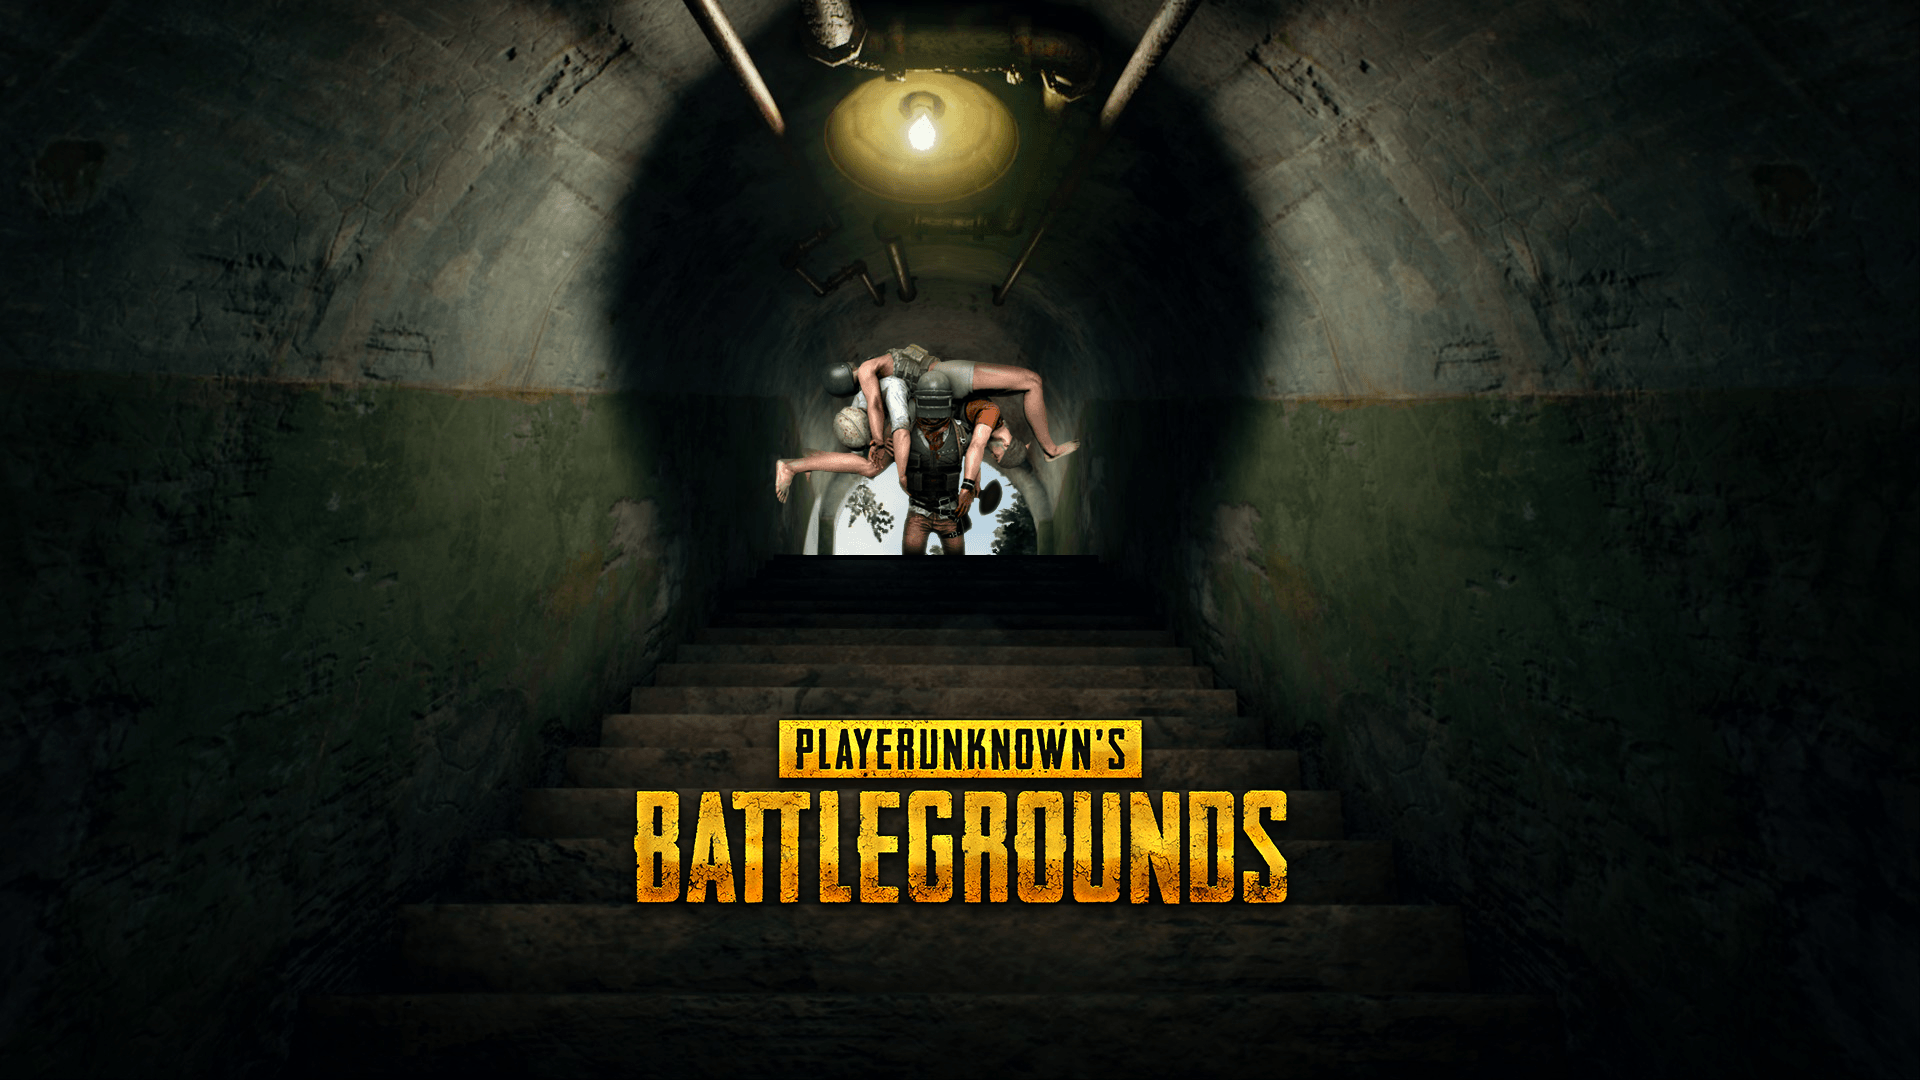 Pubg Black Wallpapers: PUBG Wallpapers